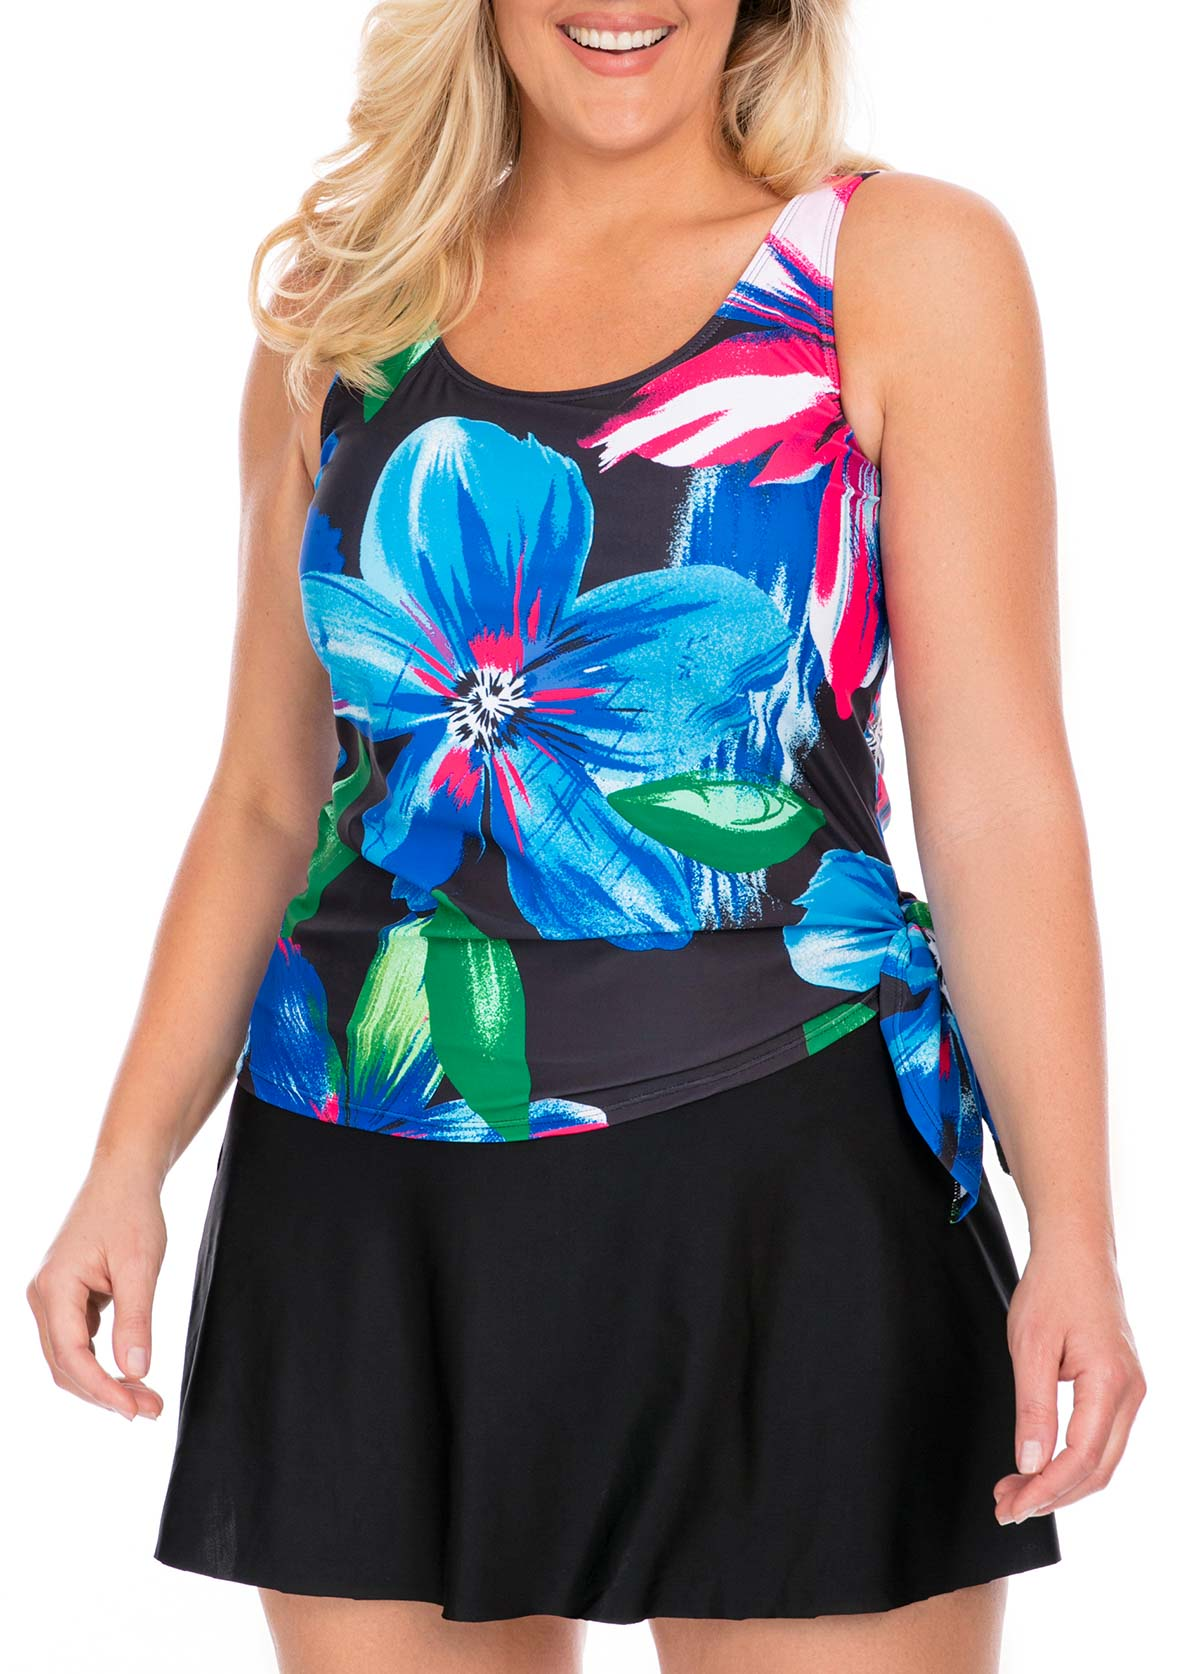 Tie Side Plus Size Tankini Top and Pantskirt